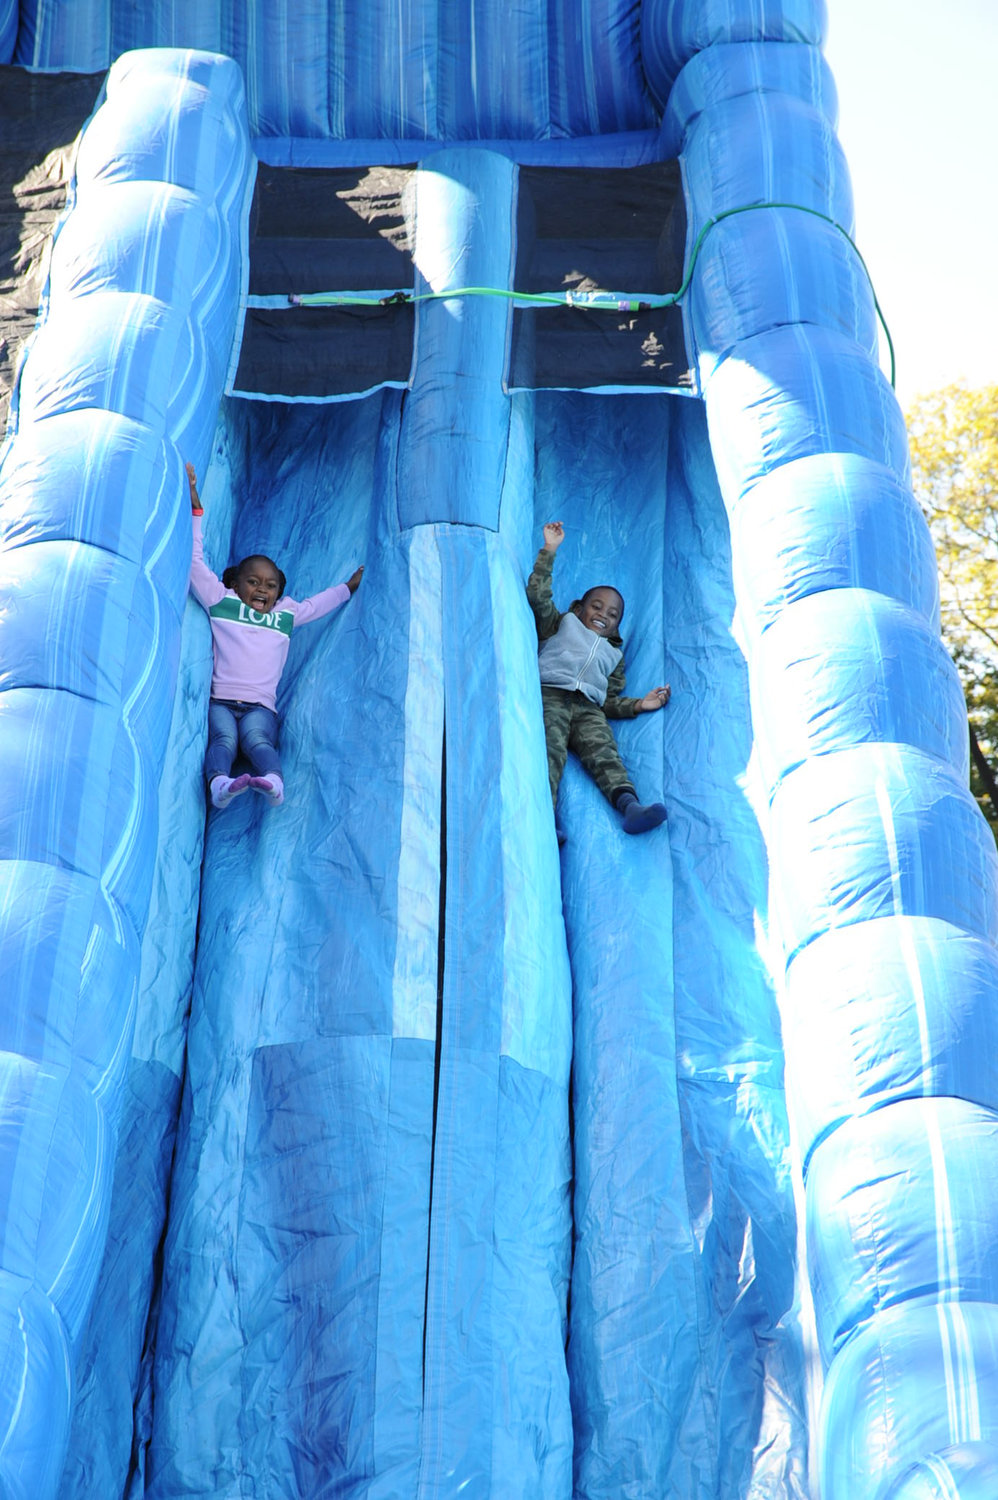 The big slide's height and decline distance did not deter Briyel Merceron, left, and Lyn Alexis from going down.